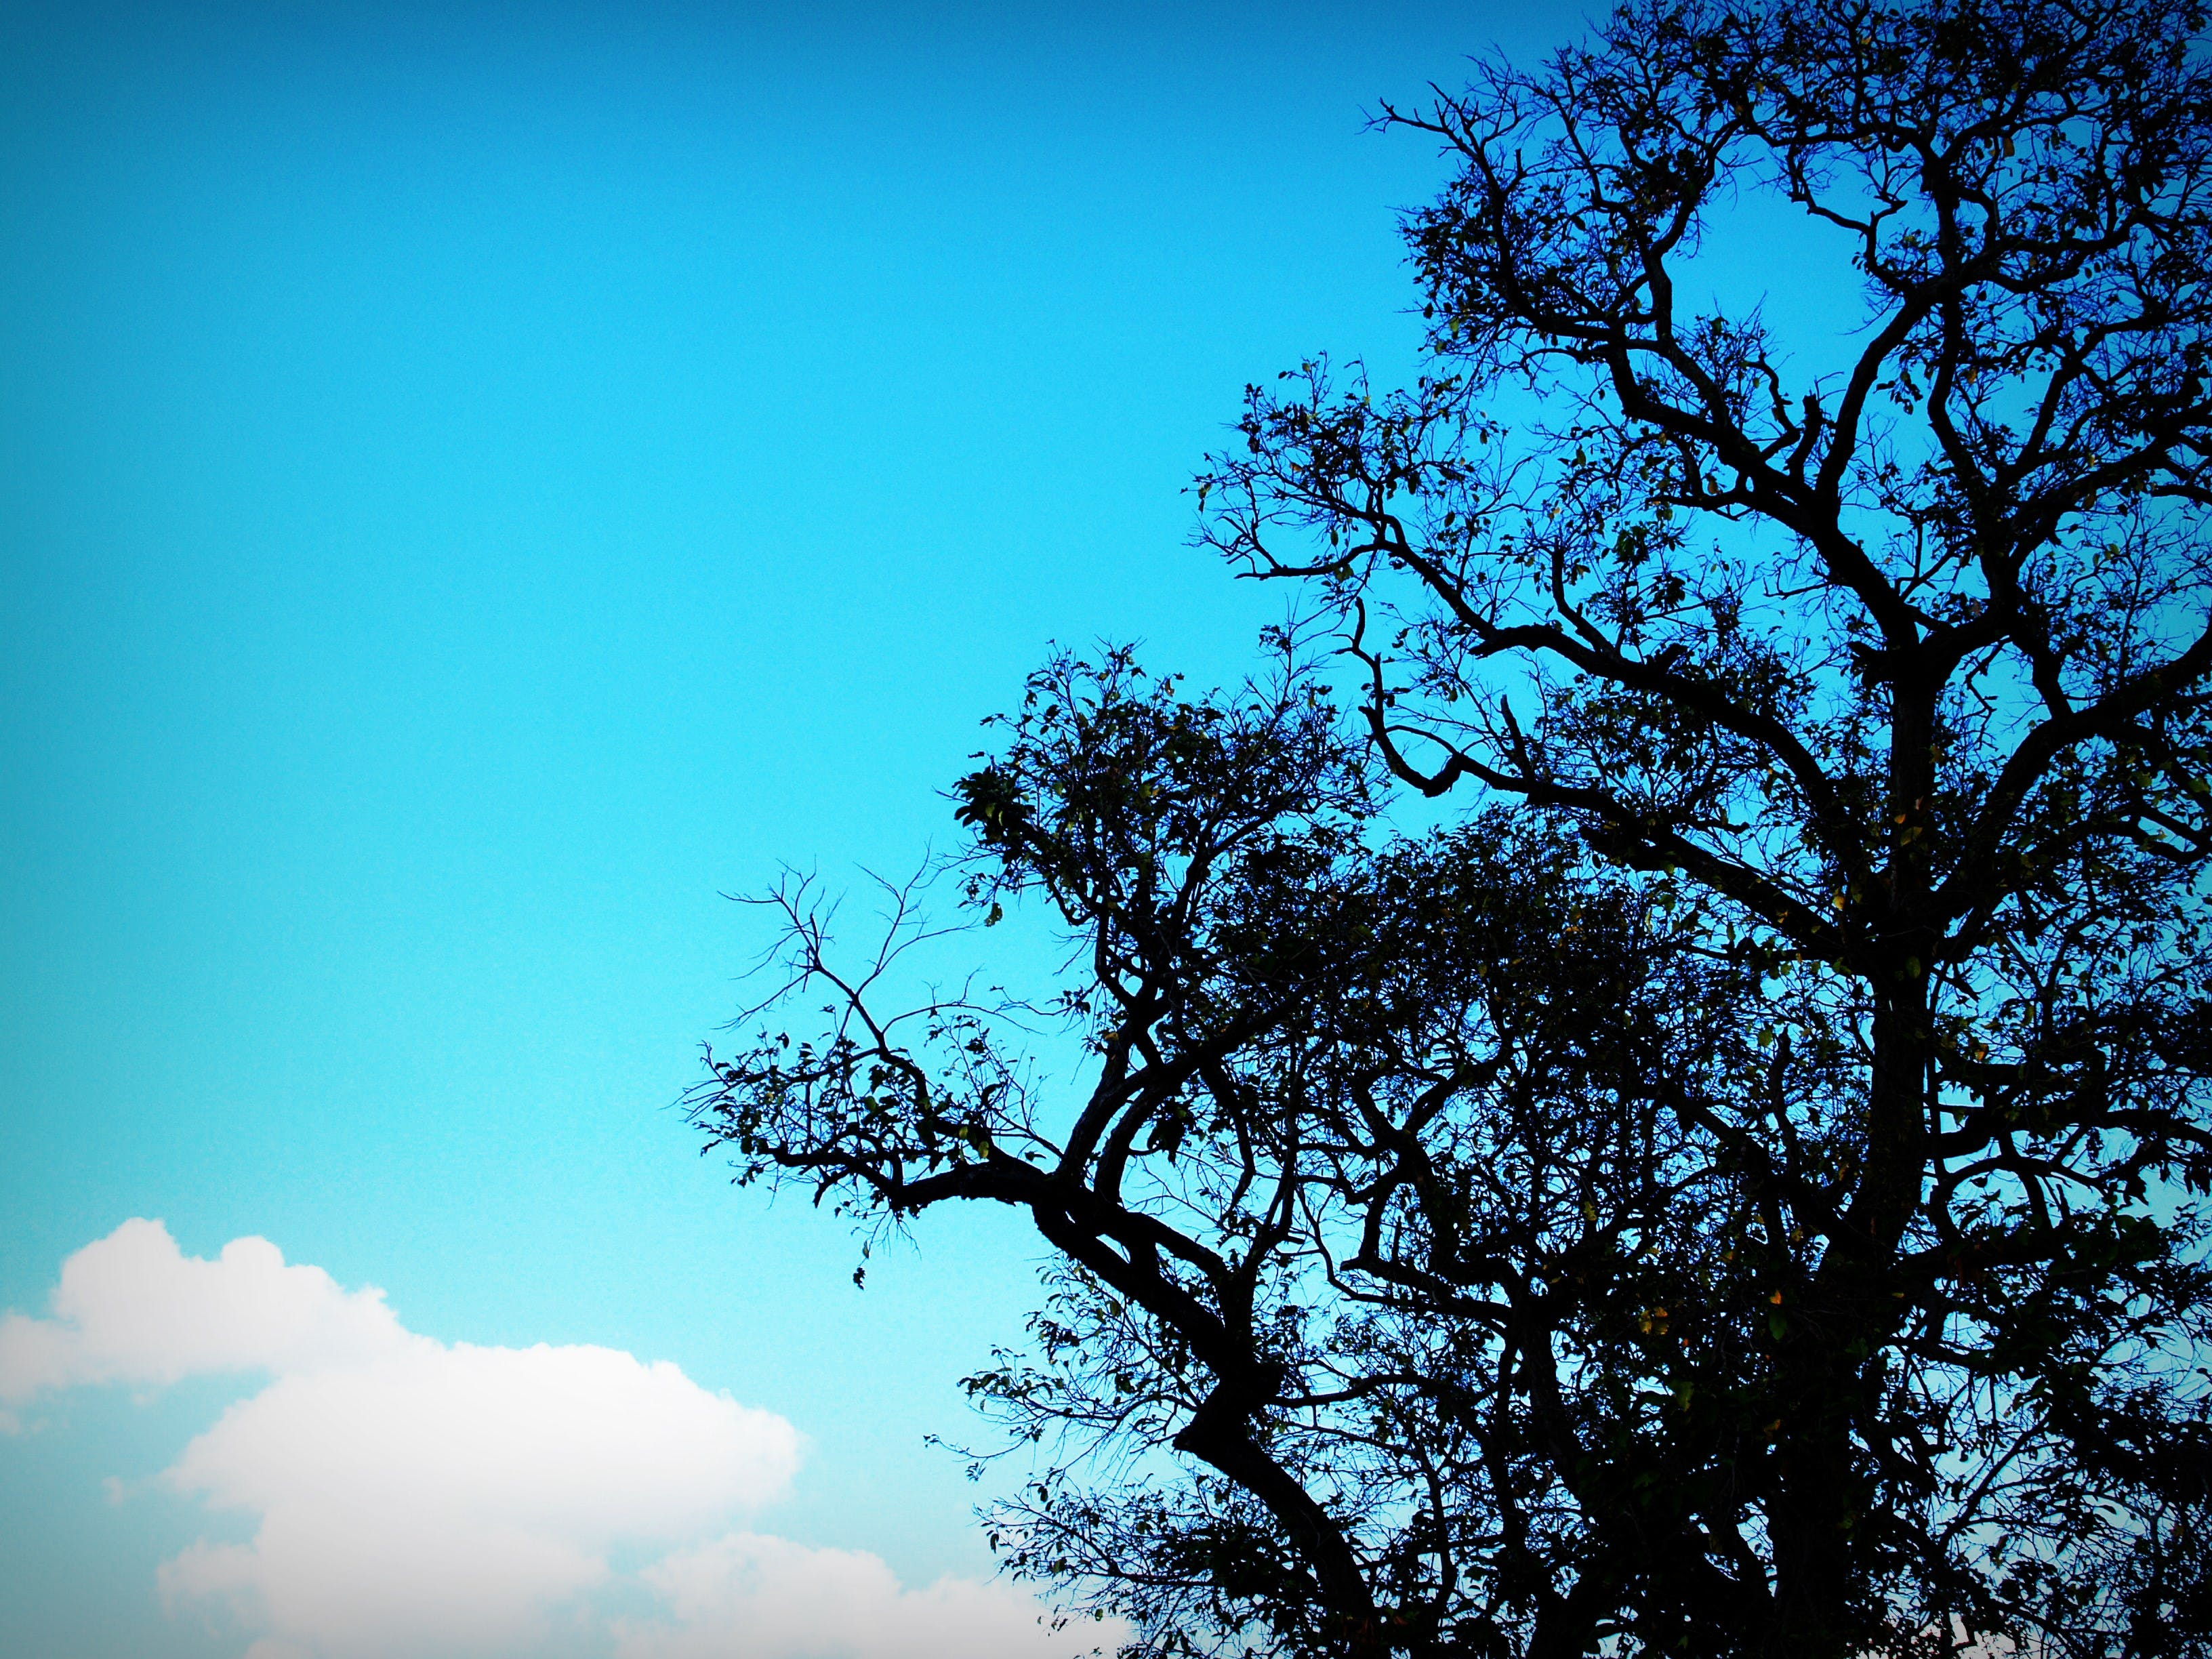 background, branches, clouds